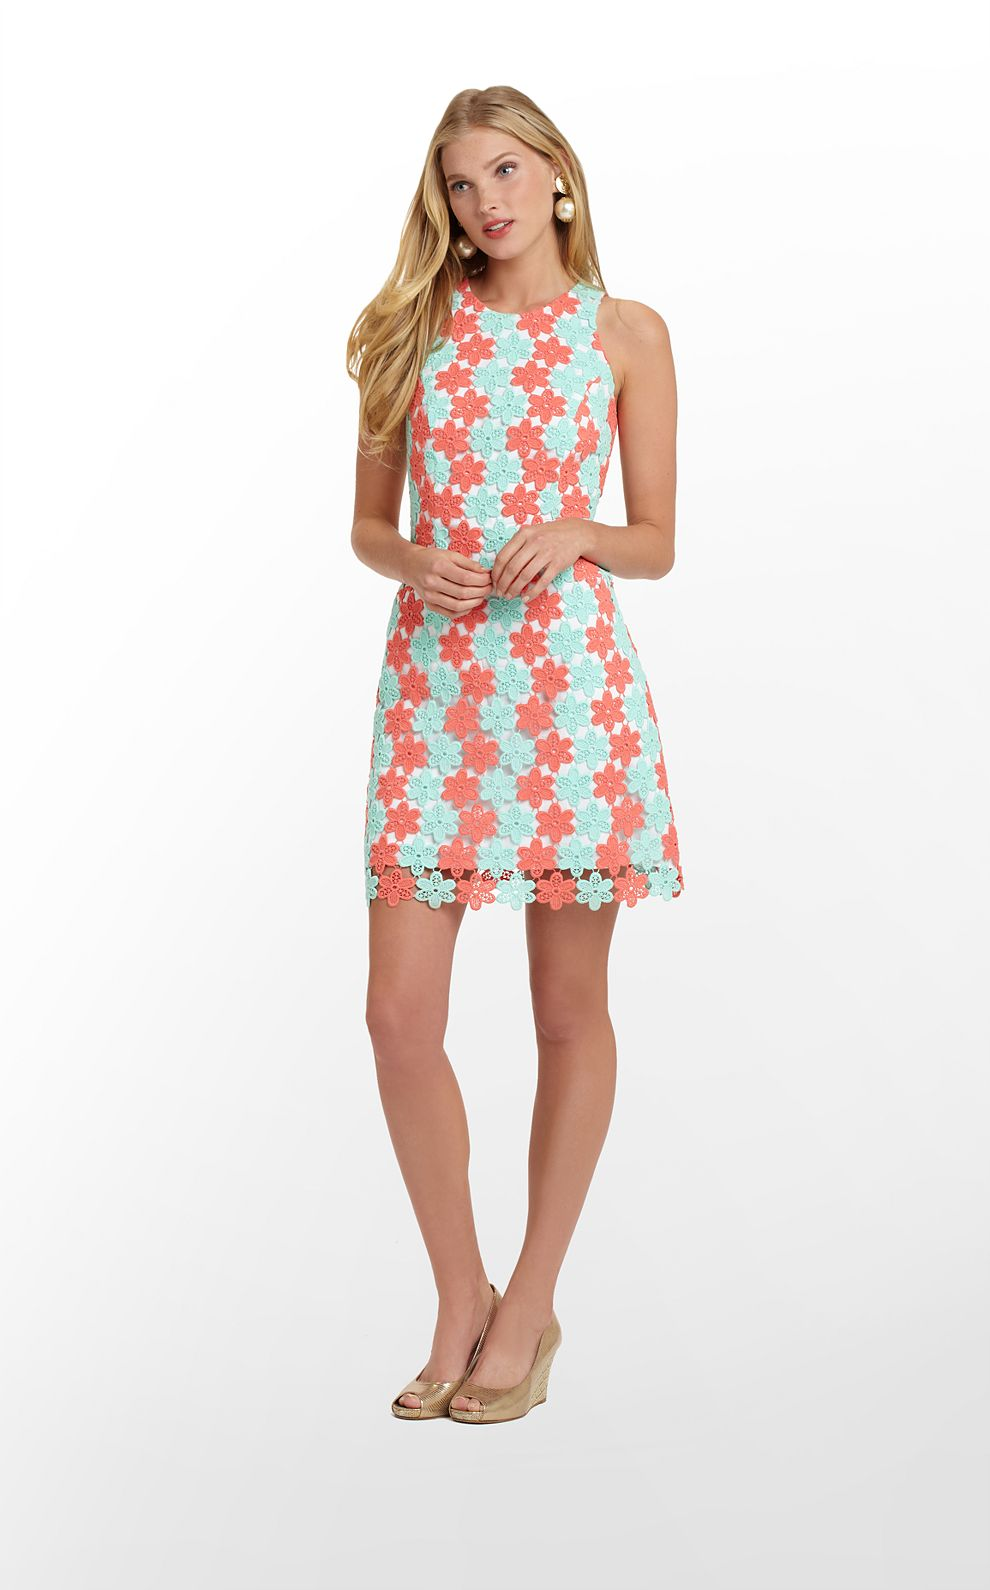 Lilly Pulitzer Girls Dresses On Sale For those teens that are not